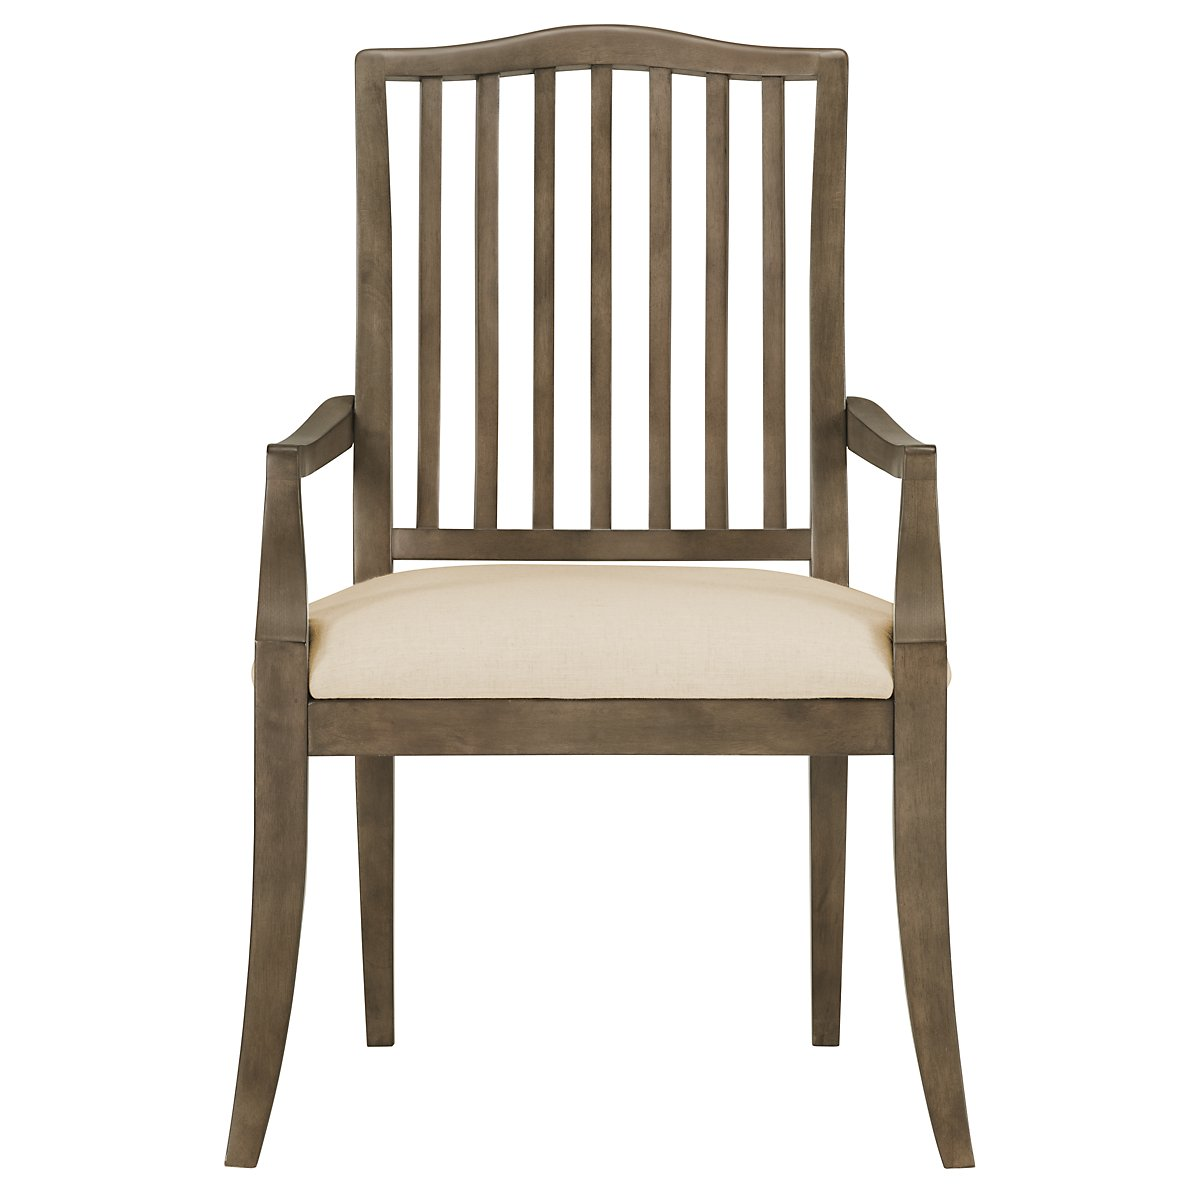 City furniture preston gray wood arm chair for Wood dining room chairs with arms